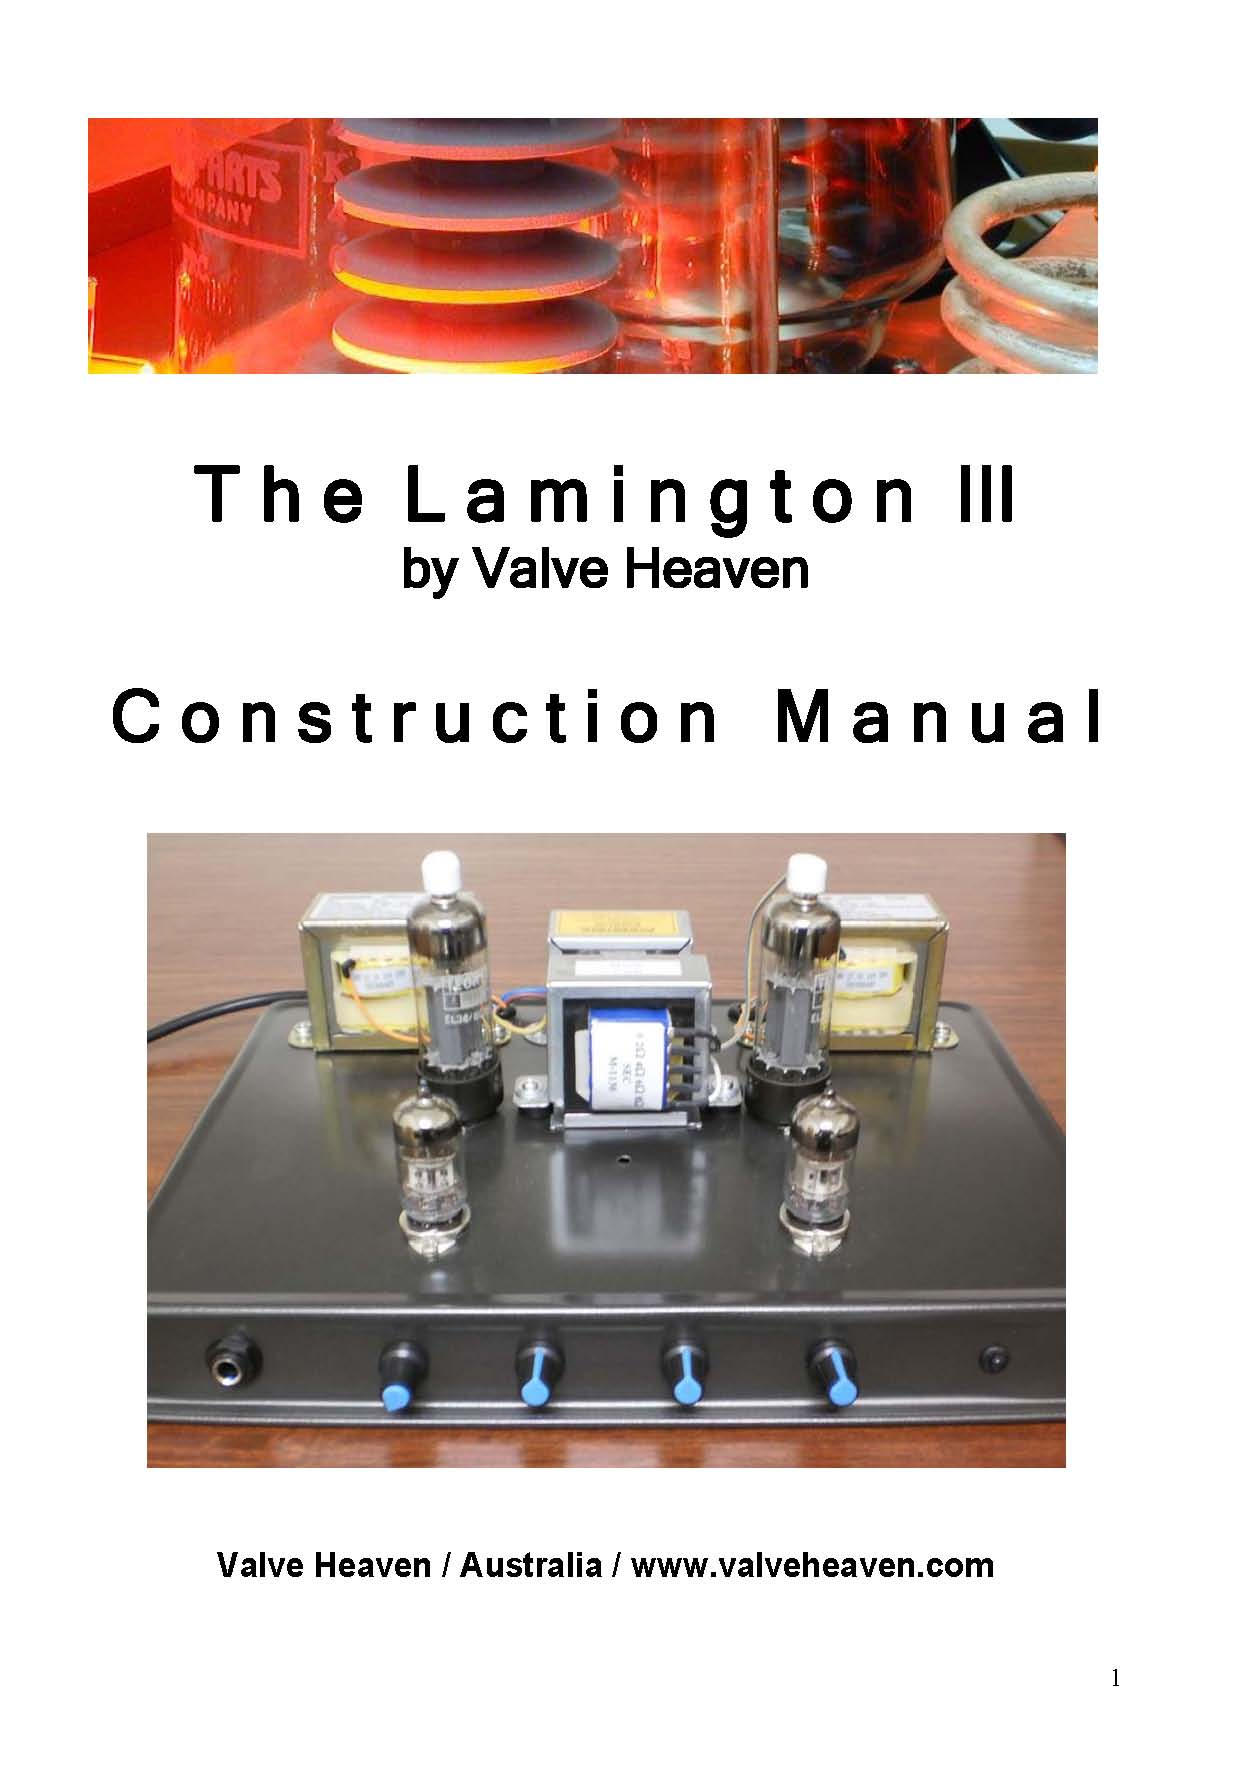 Construction Manual Lamington III